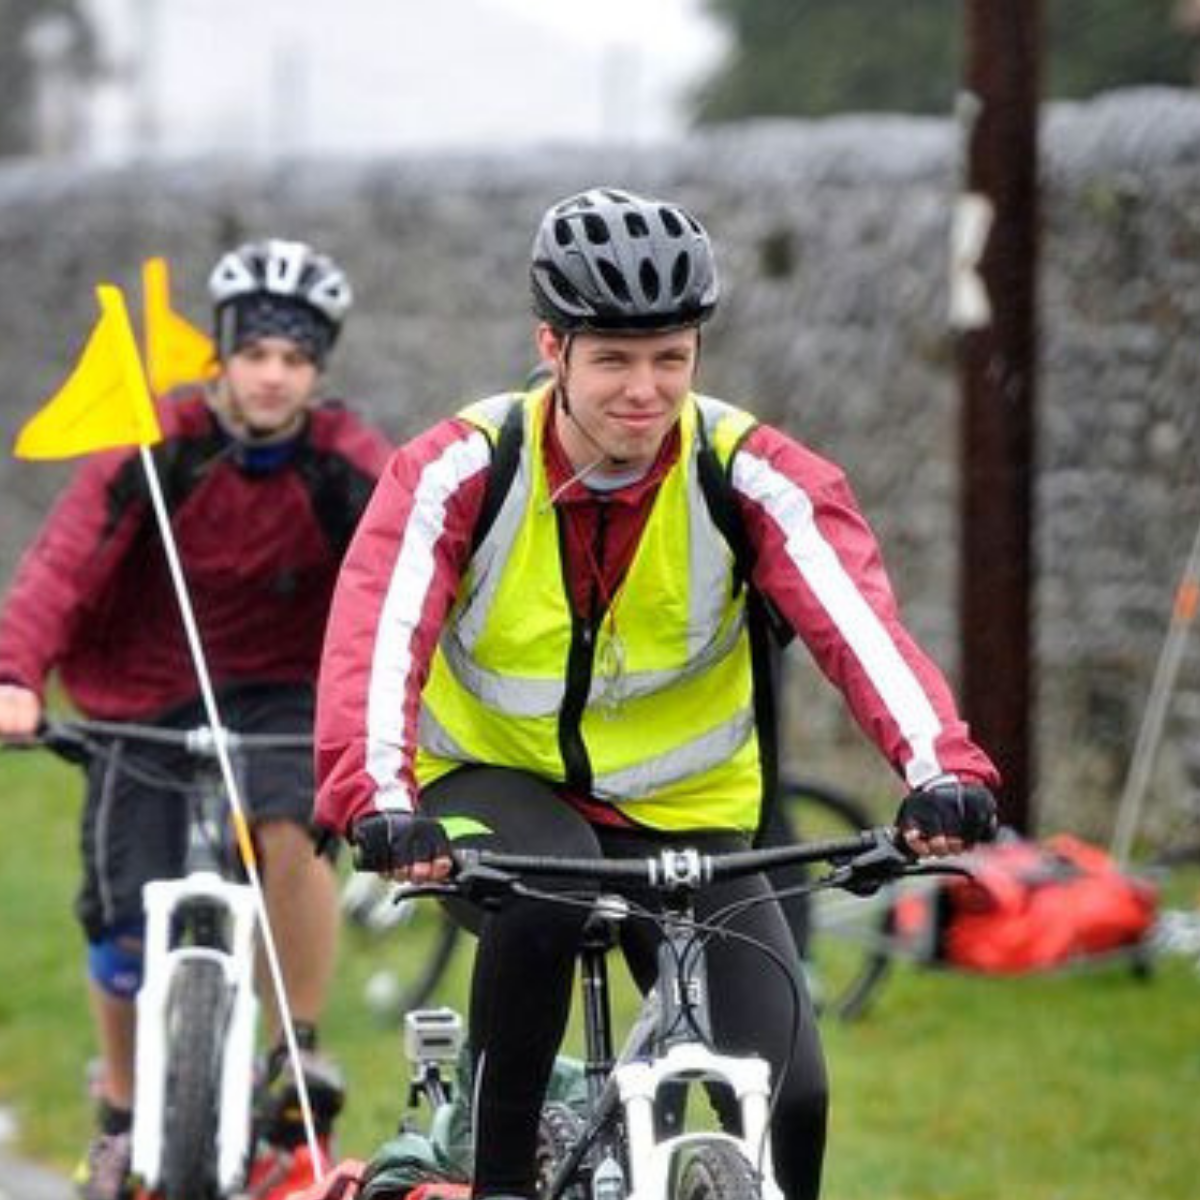 Two young people riding bikes with yellow flags wearing helmets